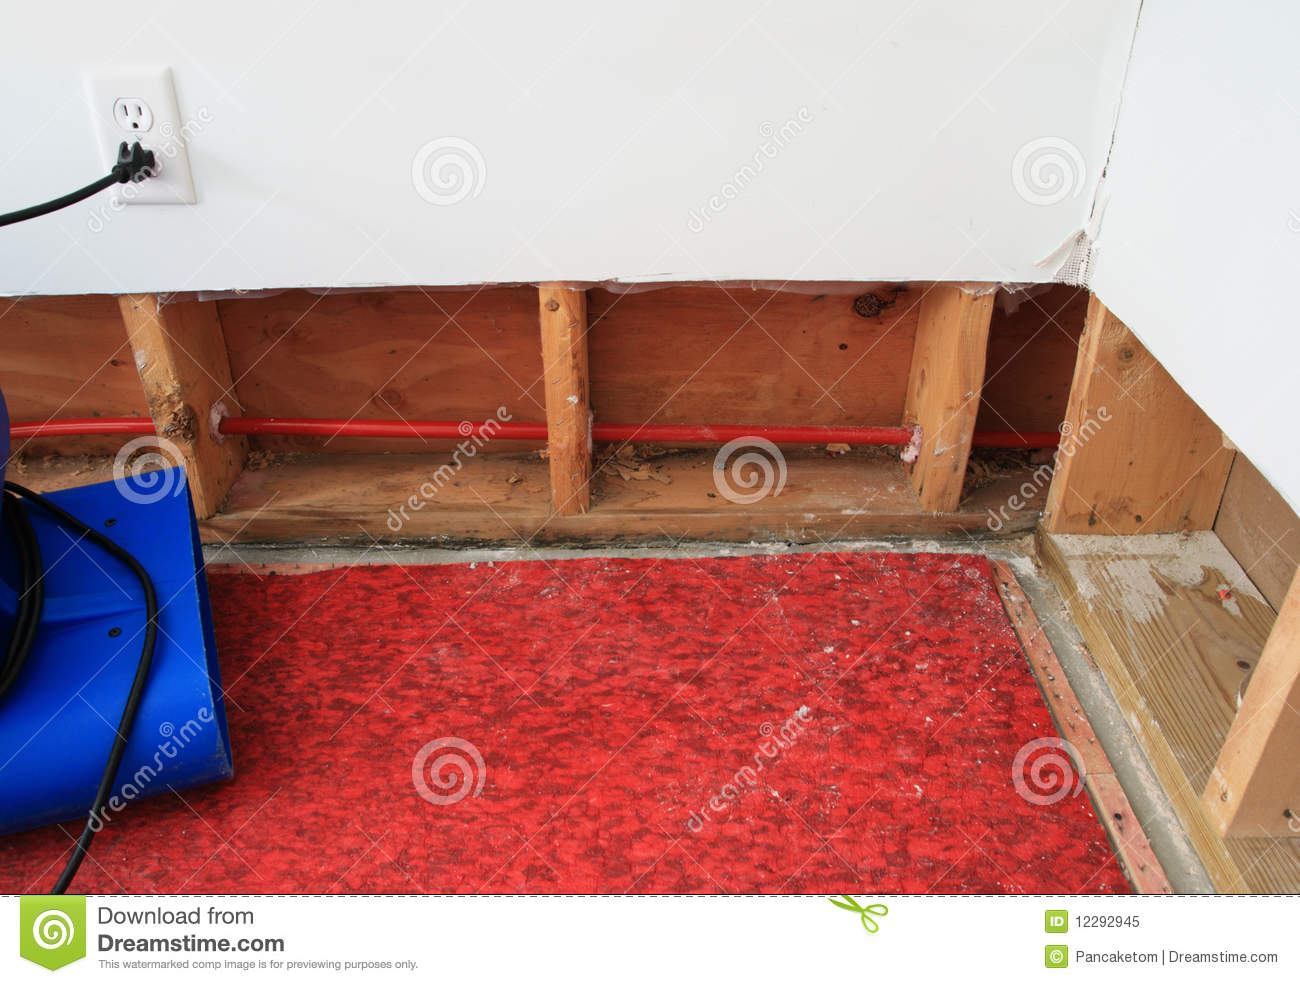 An industrial fan drying water damaged wall and carpet padding in a residential basement